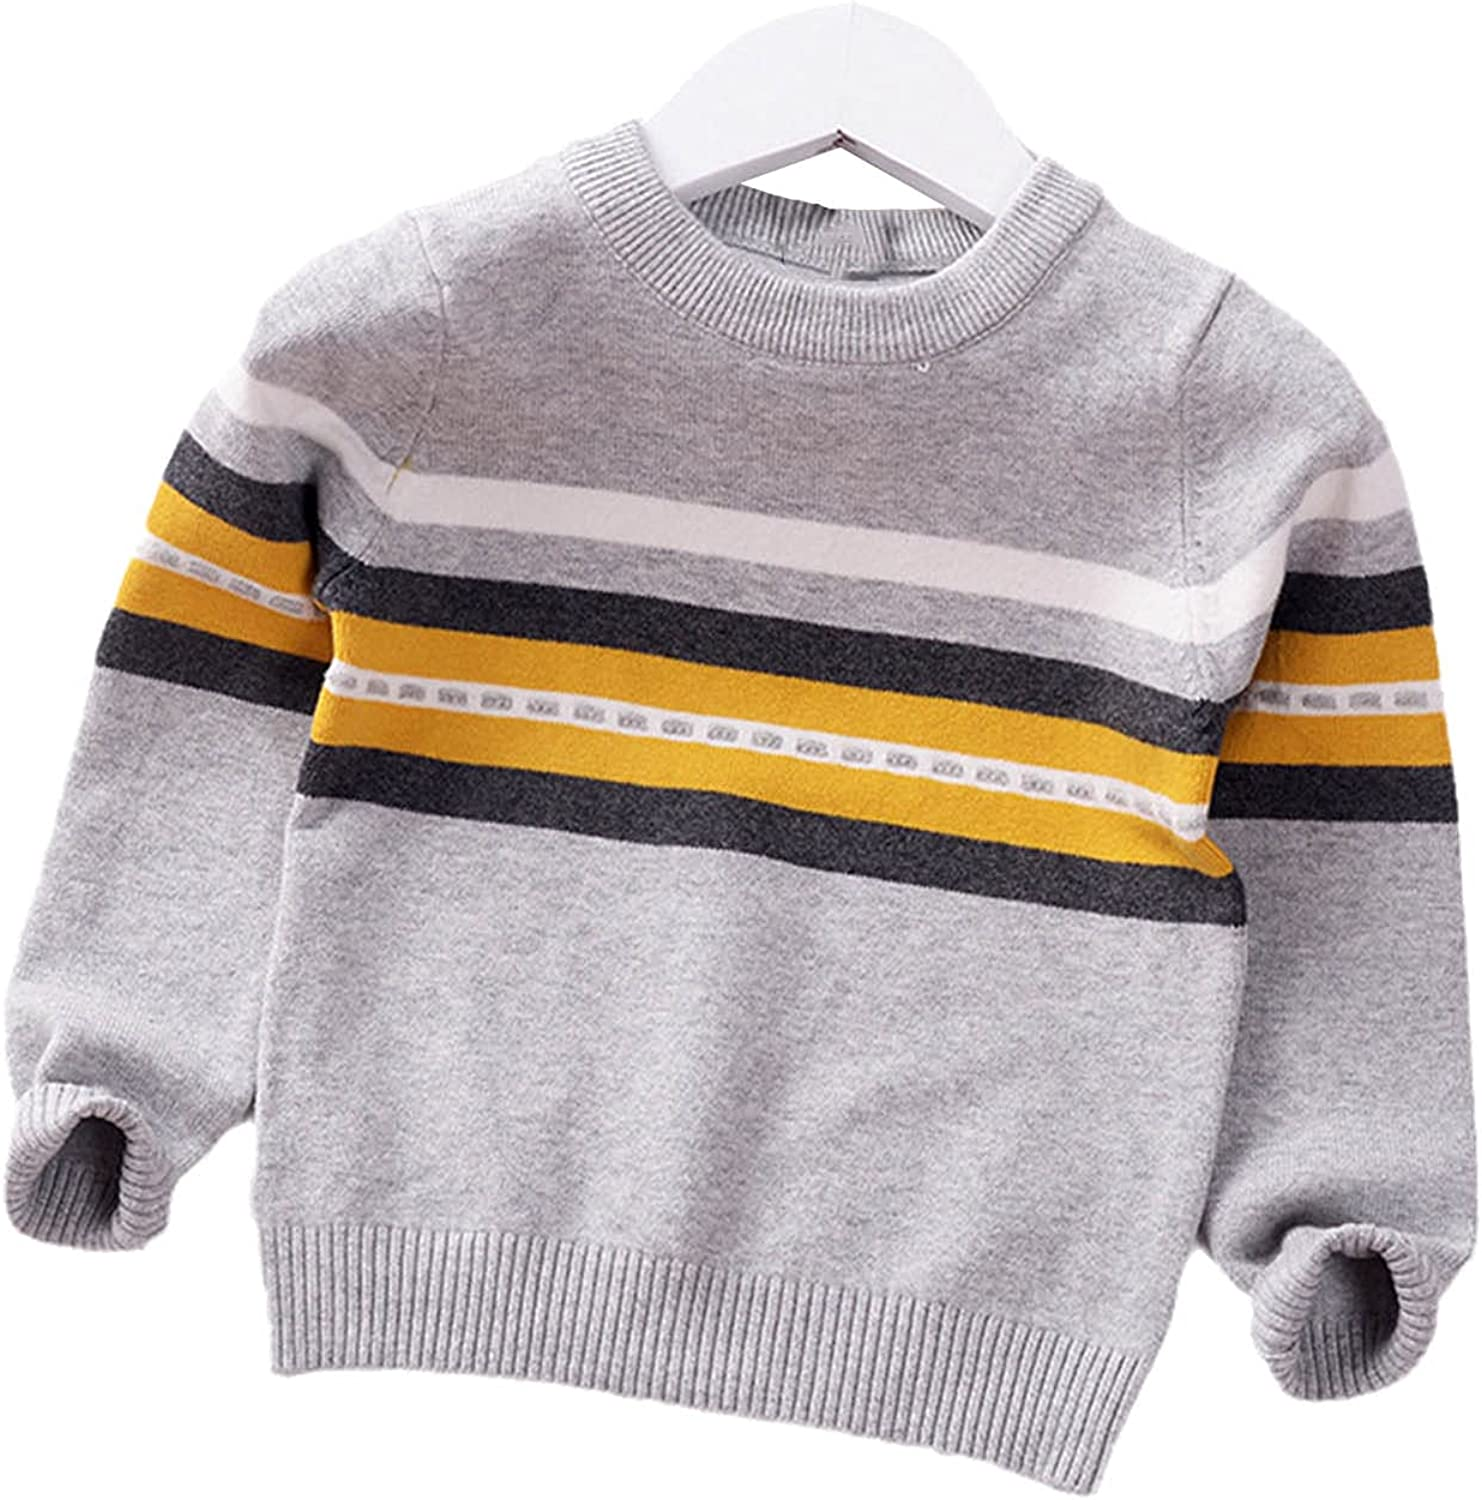 Yiqinyuan Boys Sweater Pullover Autumn Winter Kids Striped Children Baby O-Neck Sweater Fashion Clothes Toddler Jumper